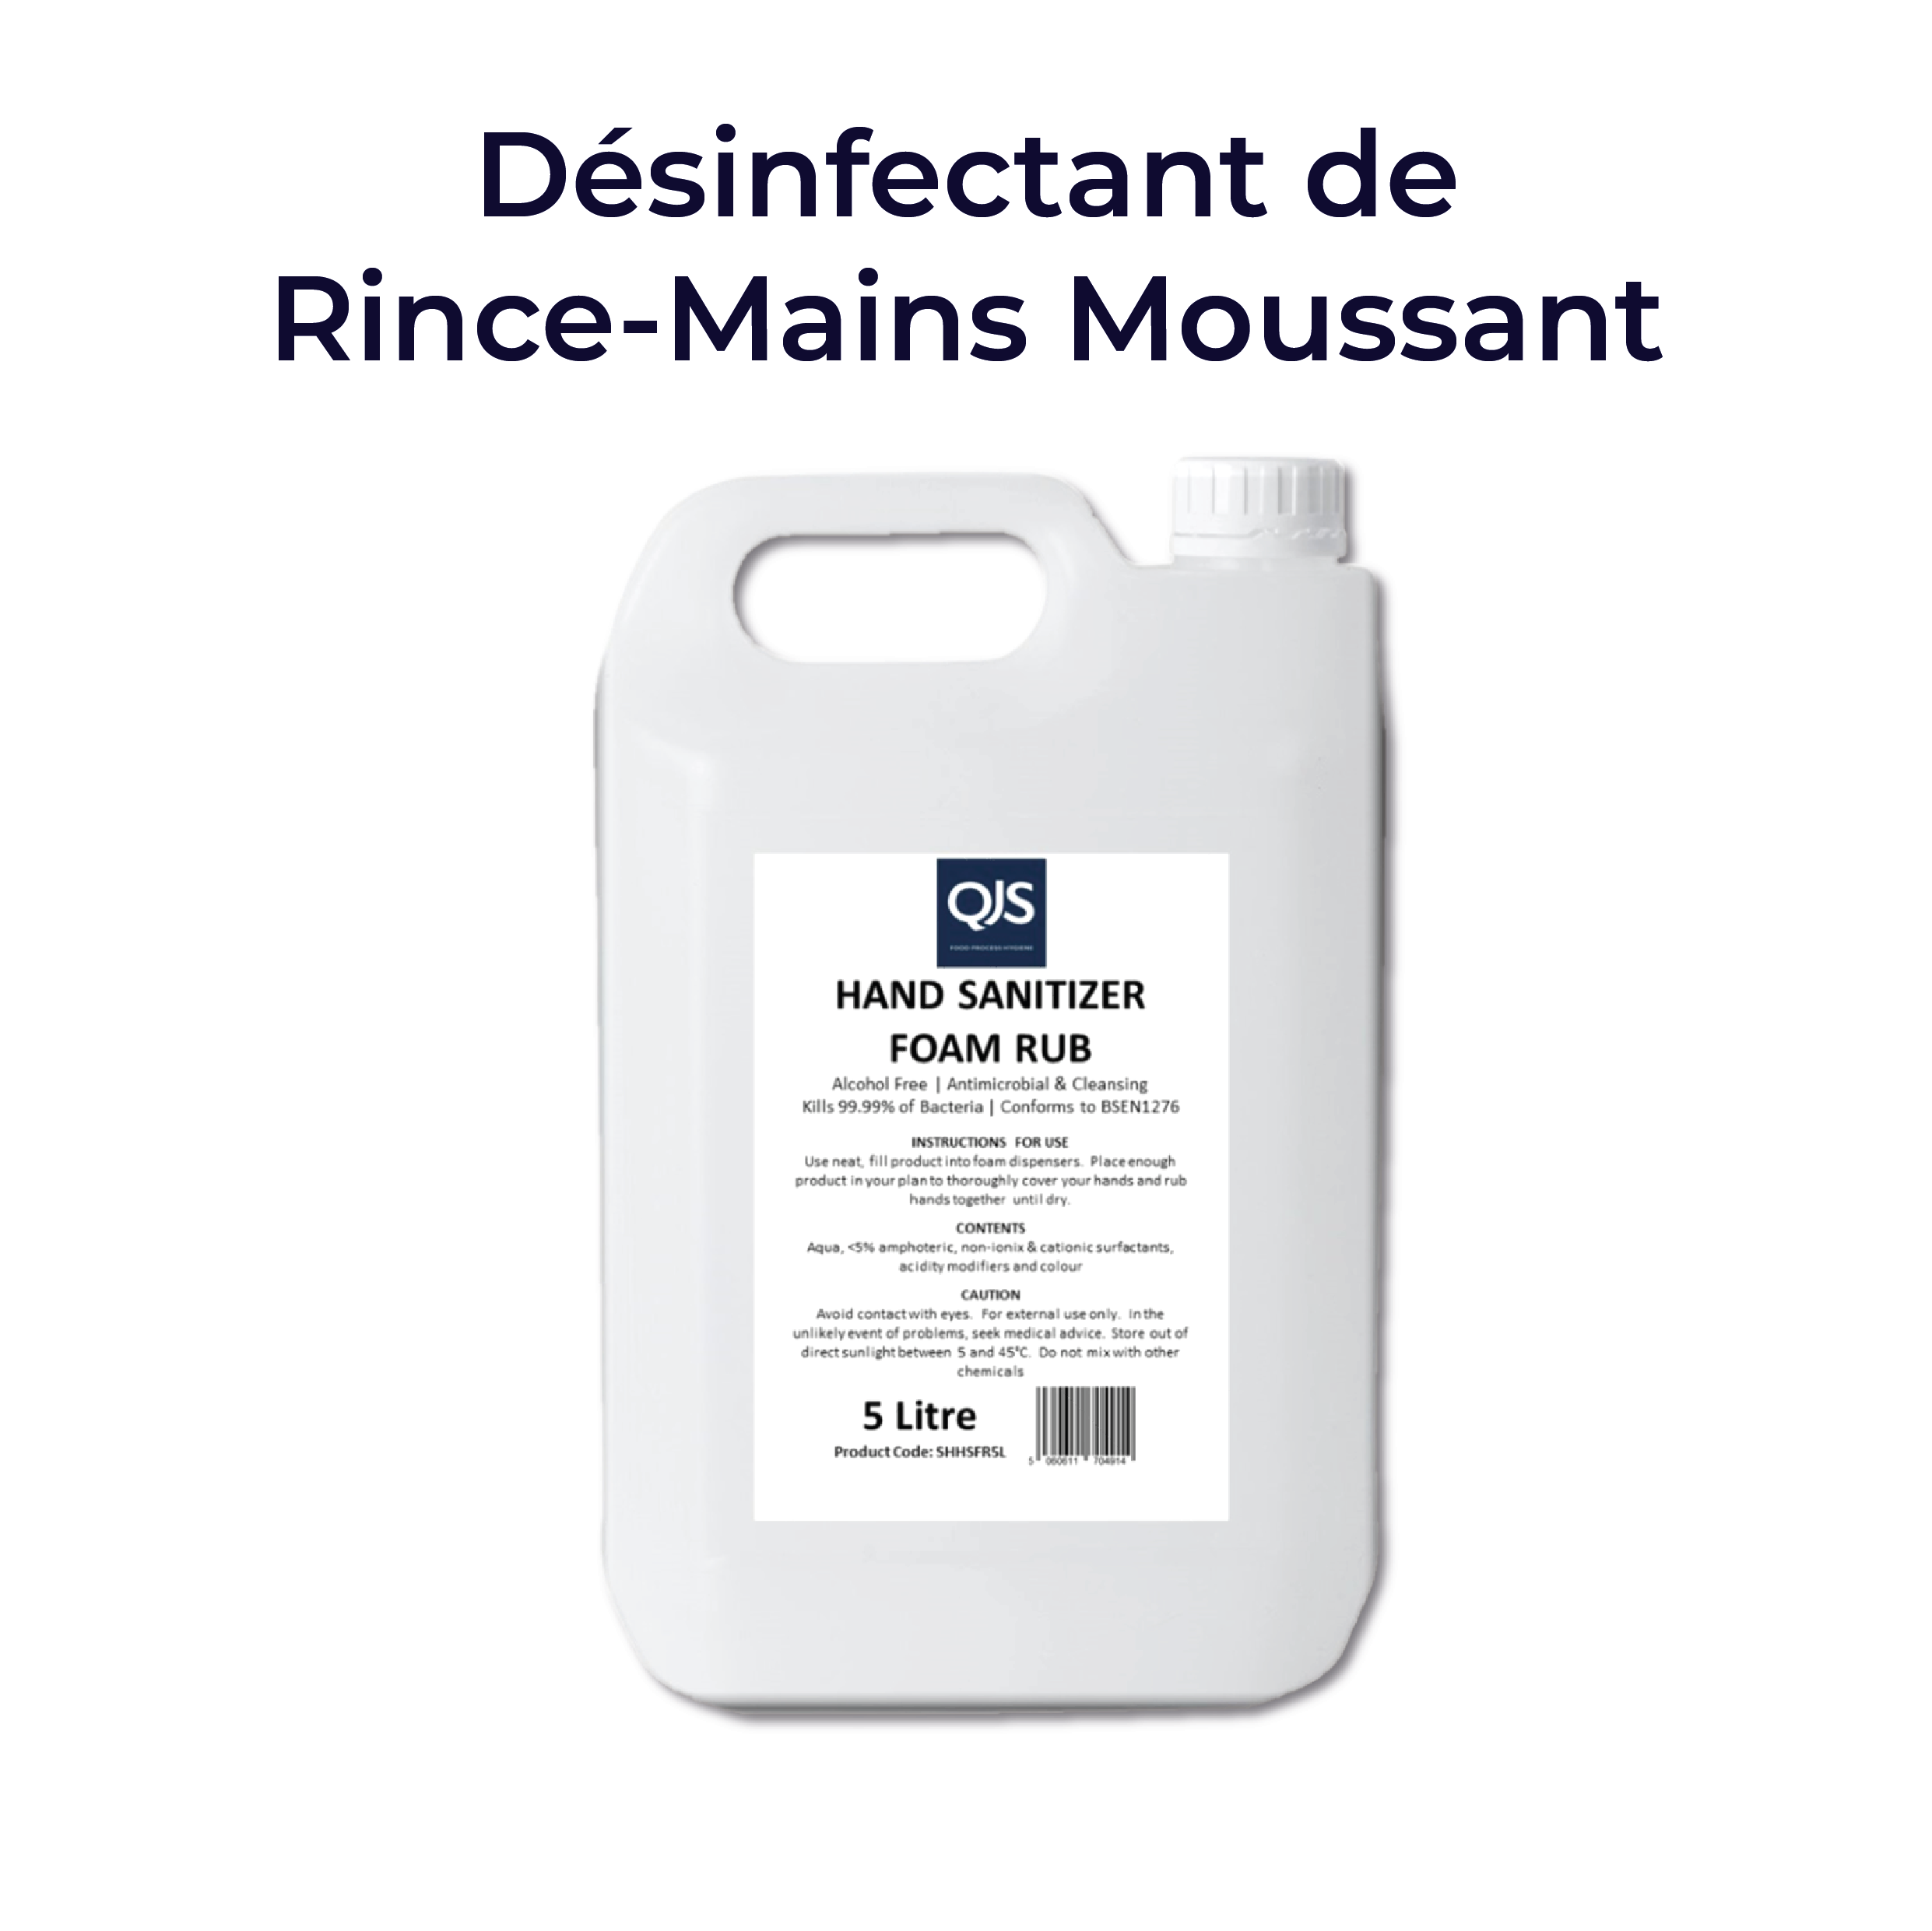 Désinfectant de Rince-Mains Moussant